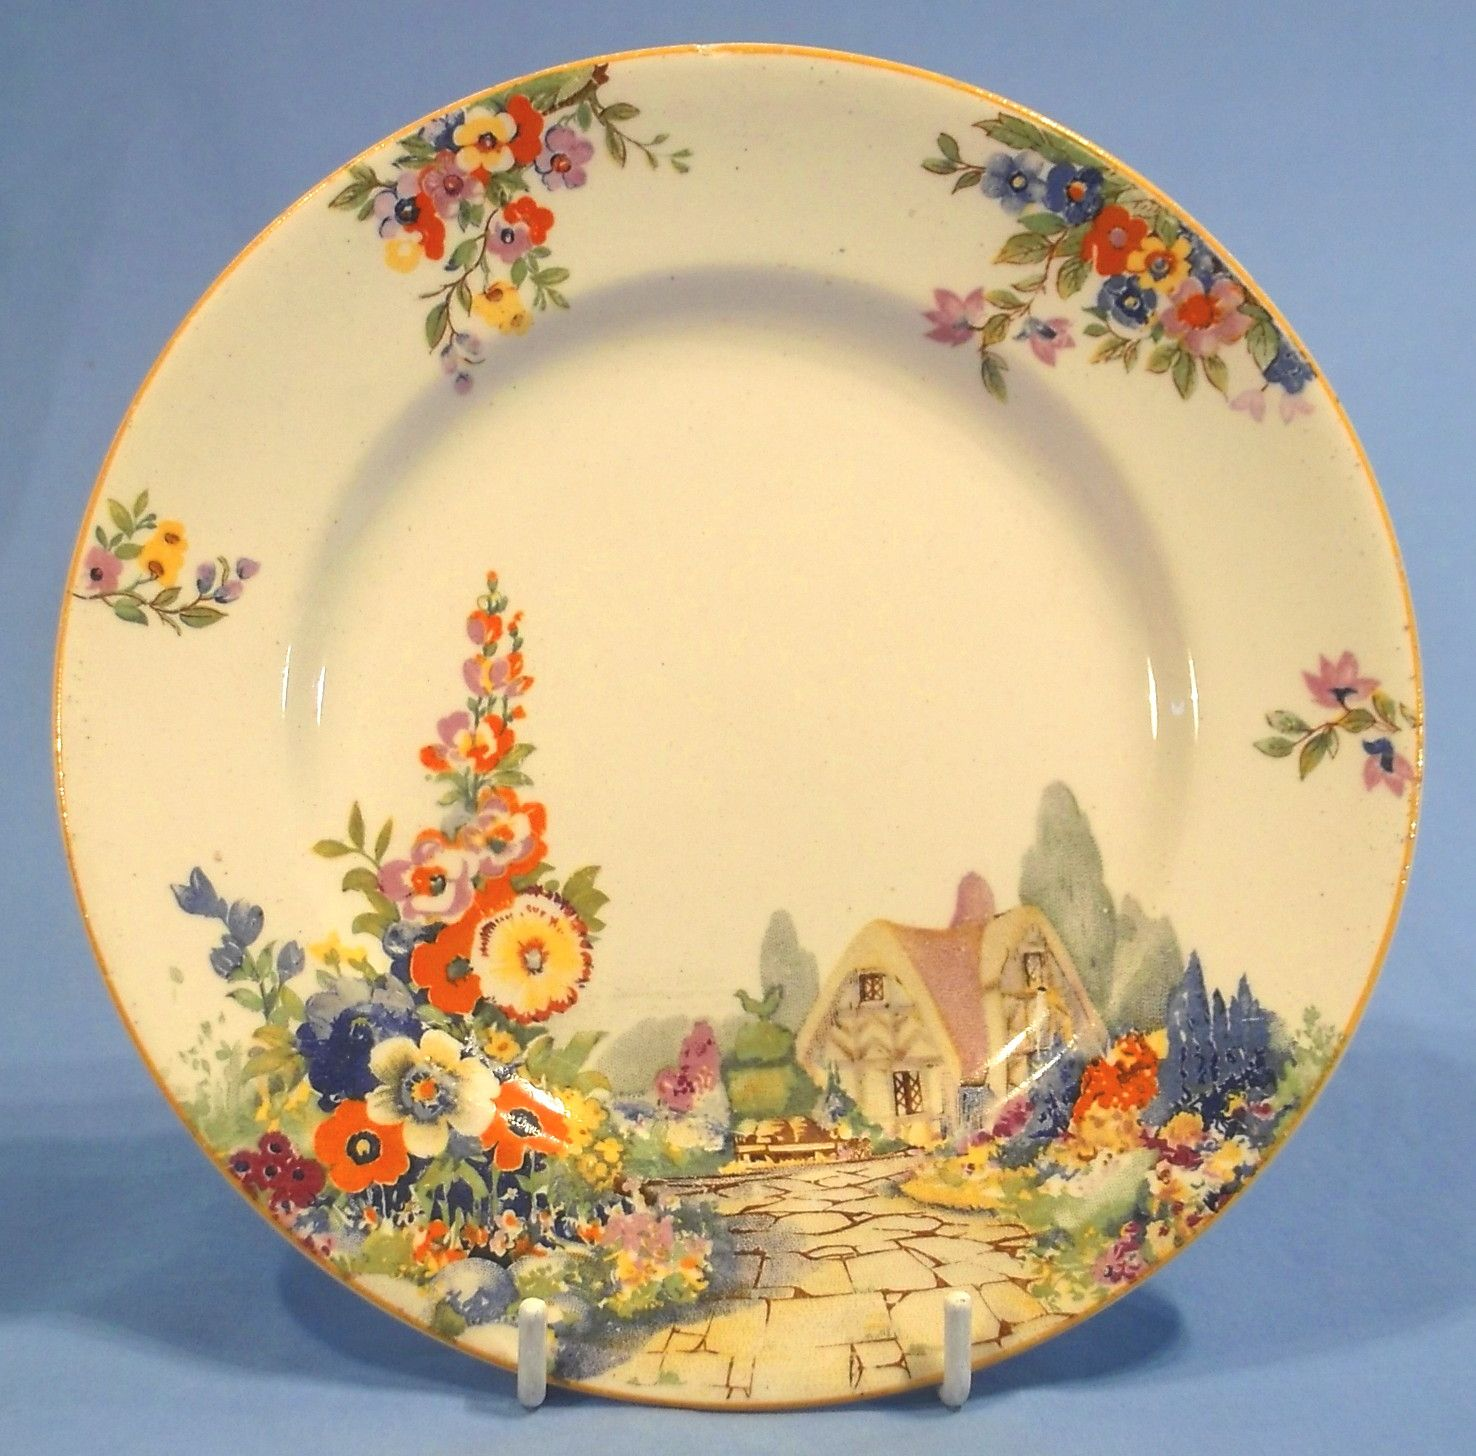 country plates 1920s 1930s - Google Search | Vintage China Plates ...